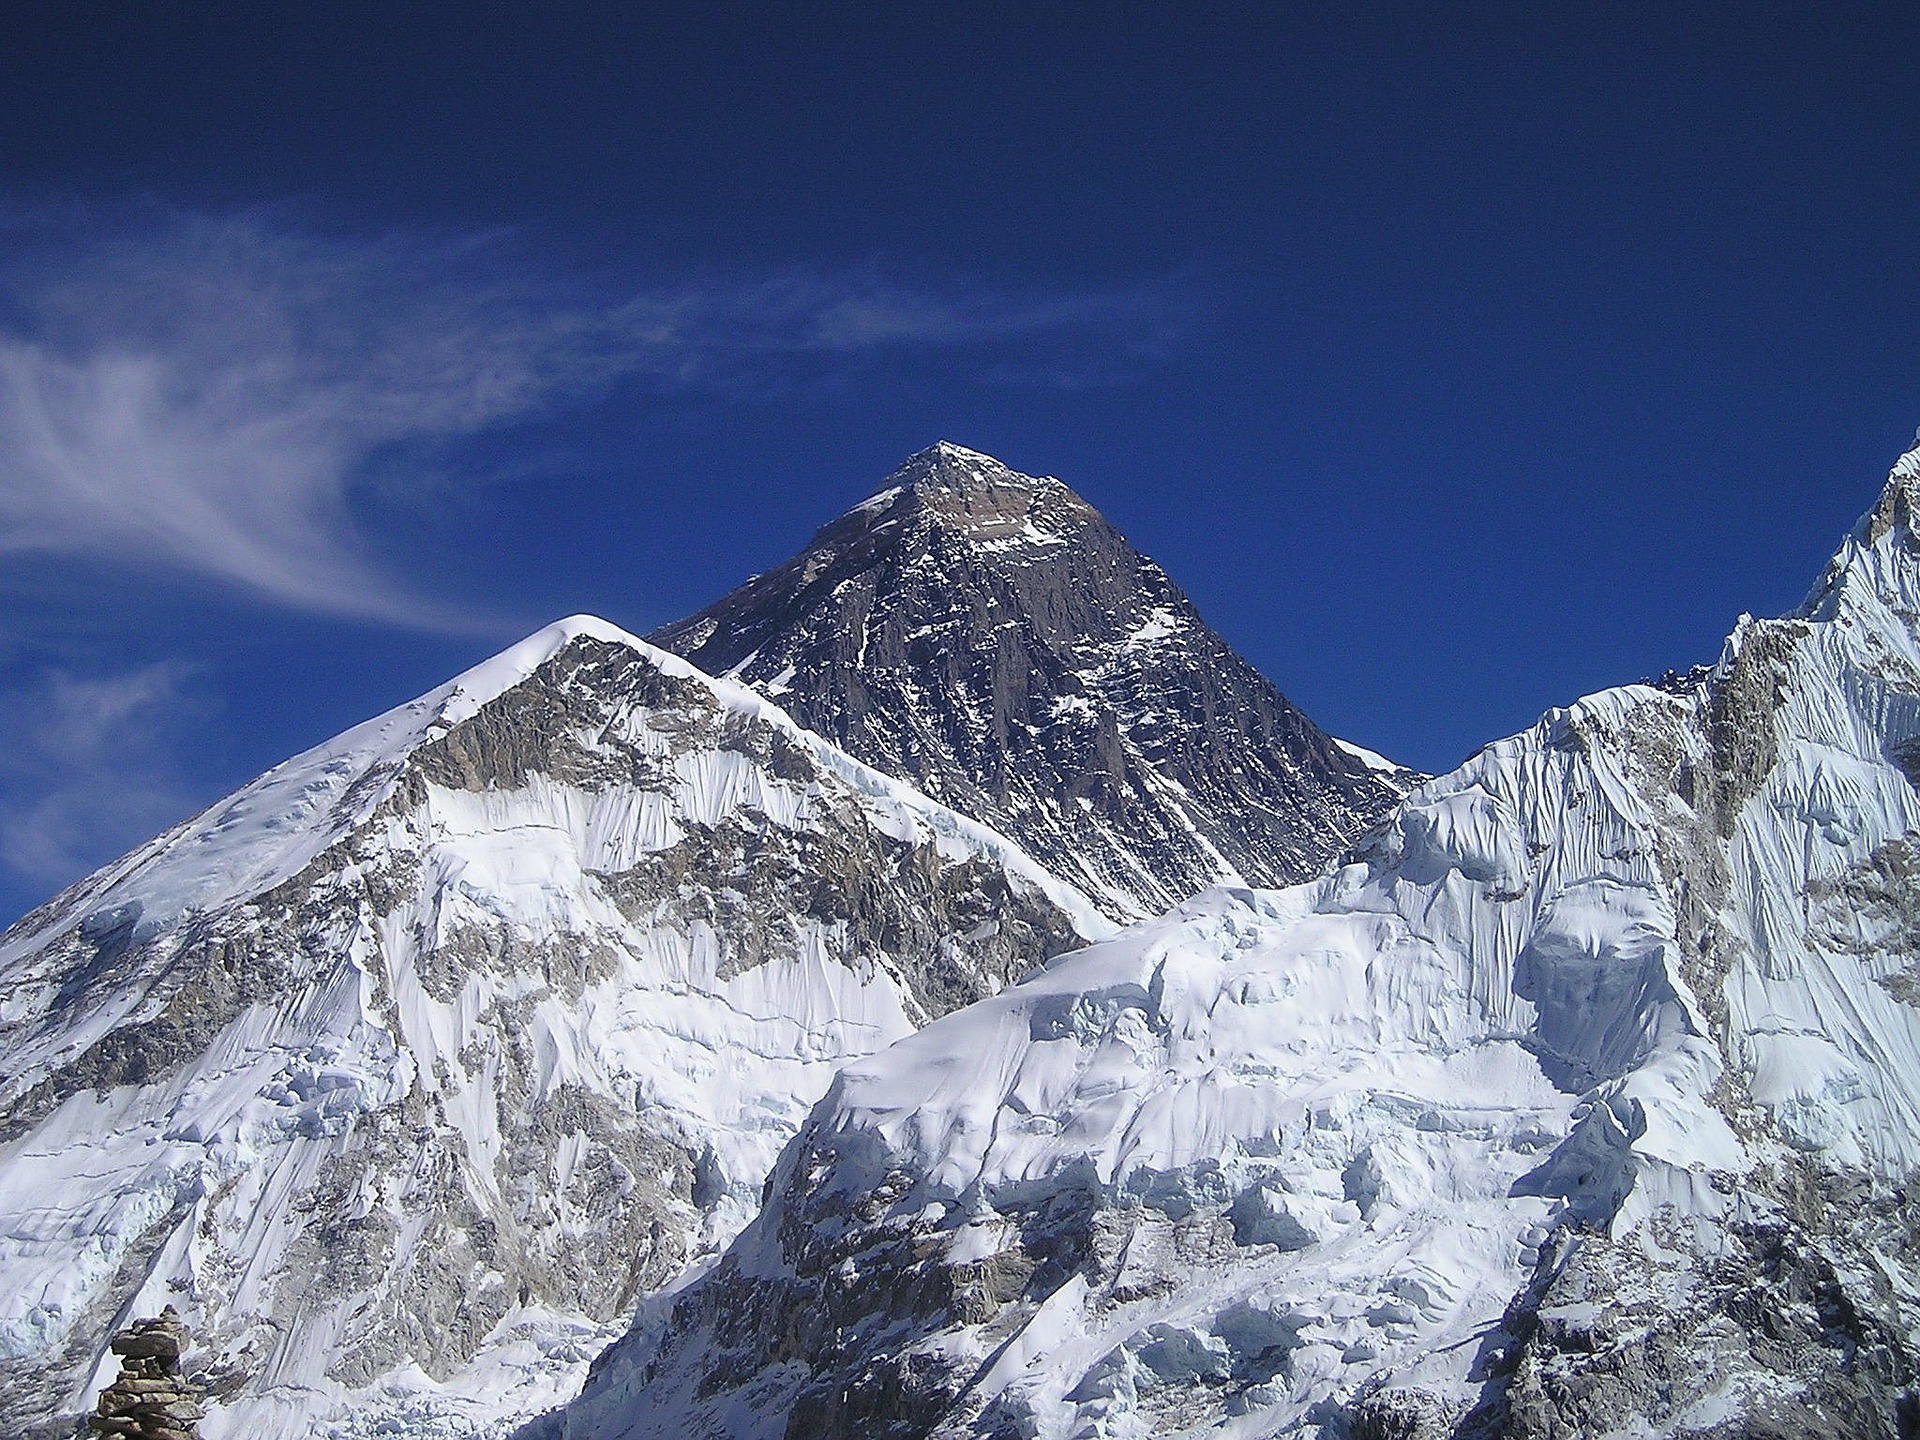 Your Journey Into Tech: Week 1 - We can't climb Mount Everest - yet!